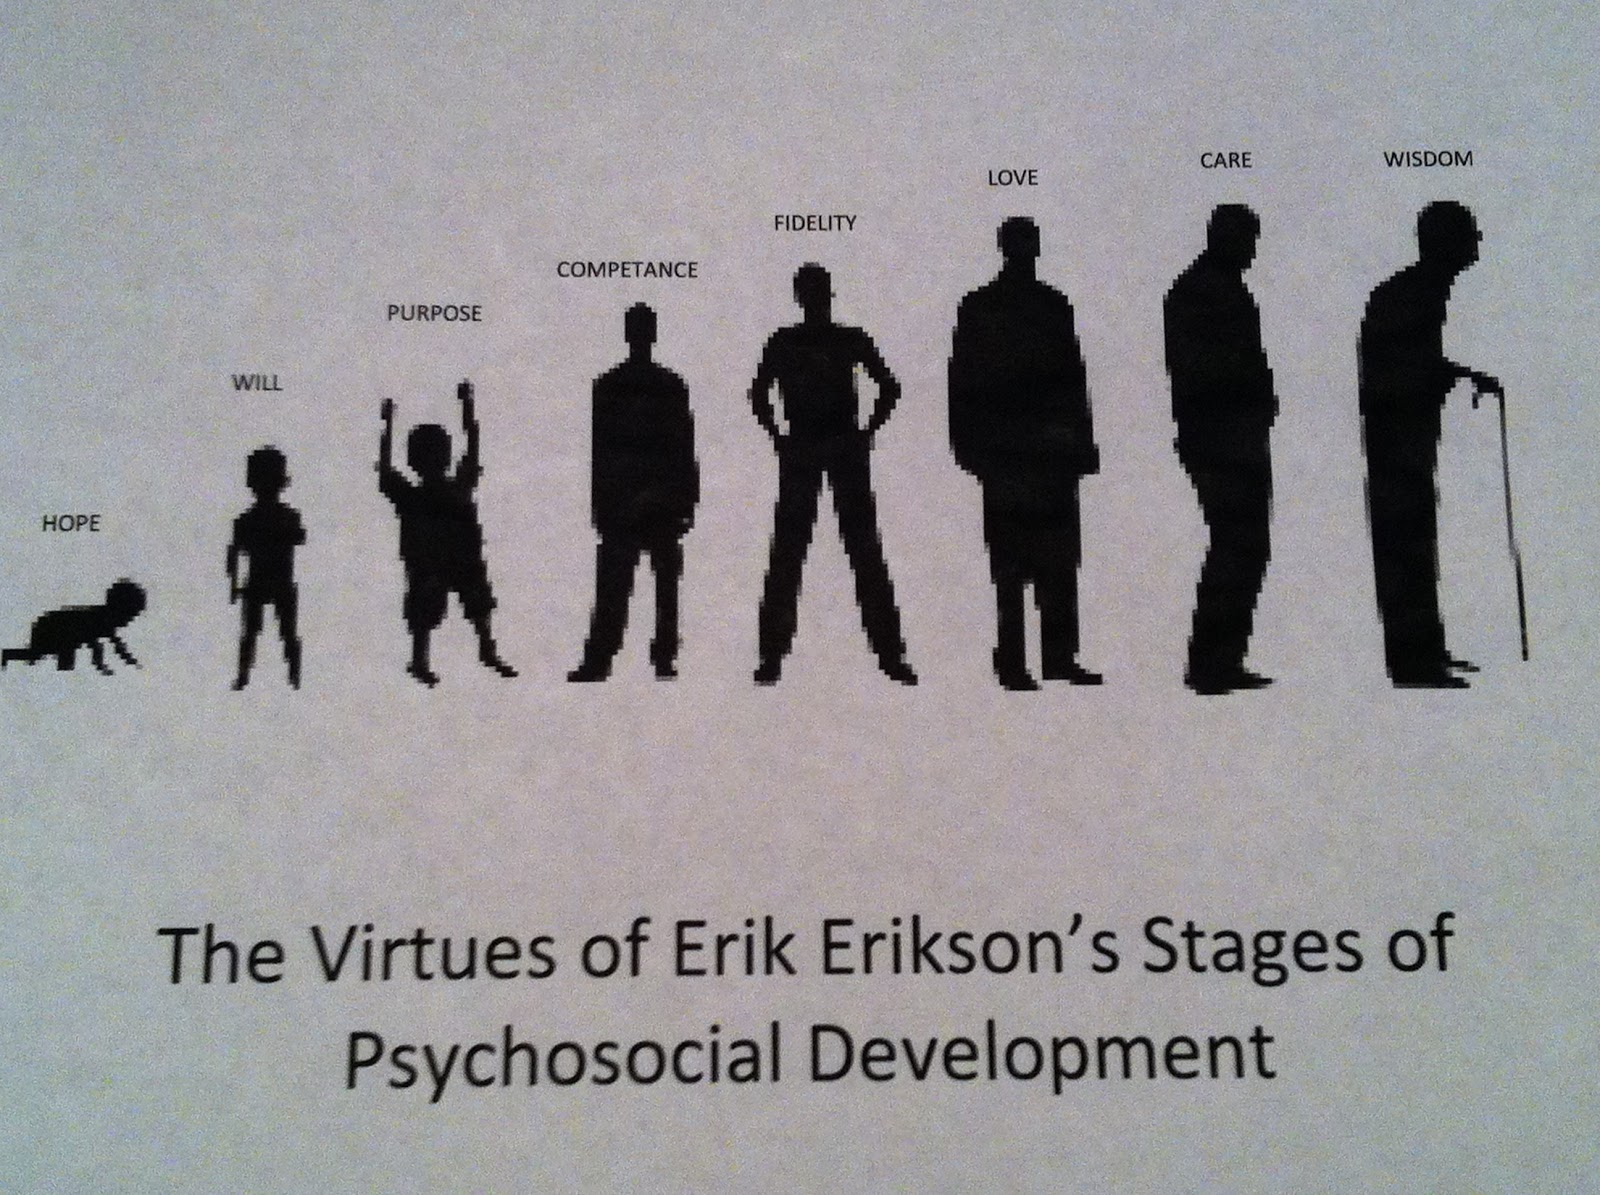 eriksons psychosocial theory of human development